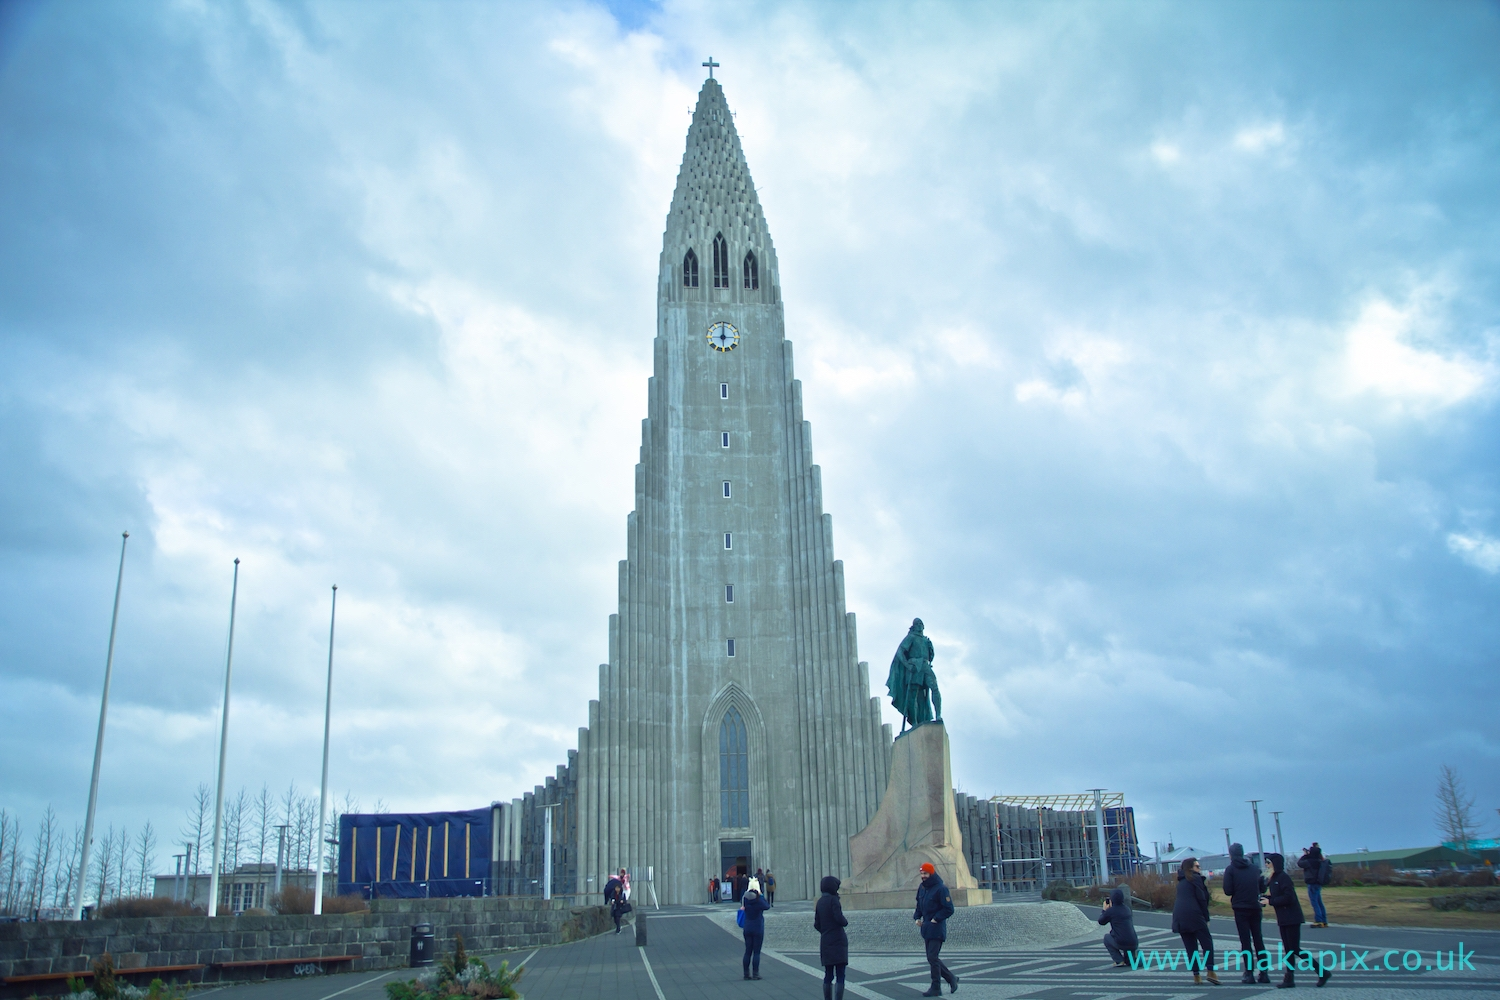 Church in Reykjavik, Iceland